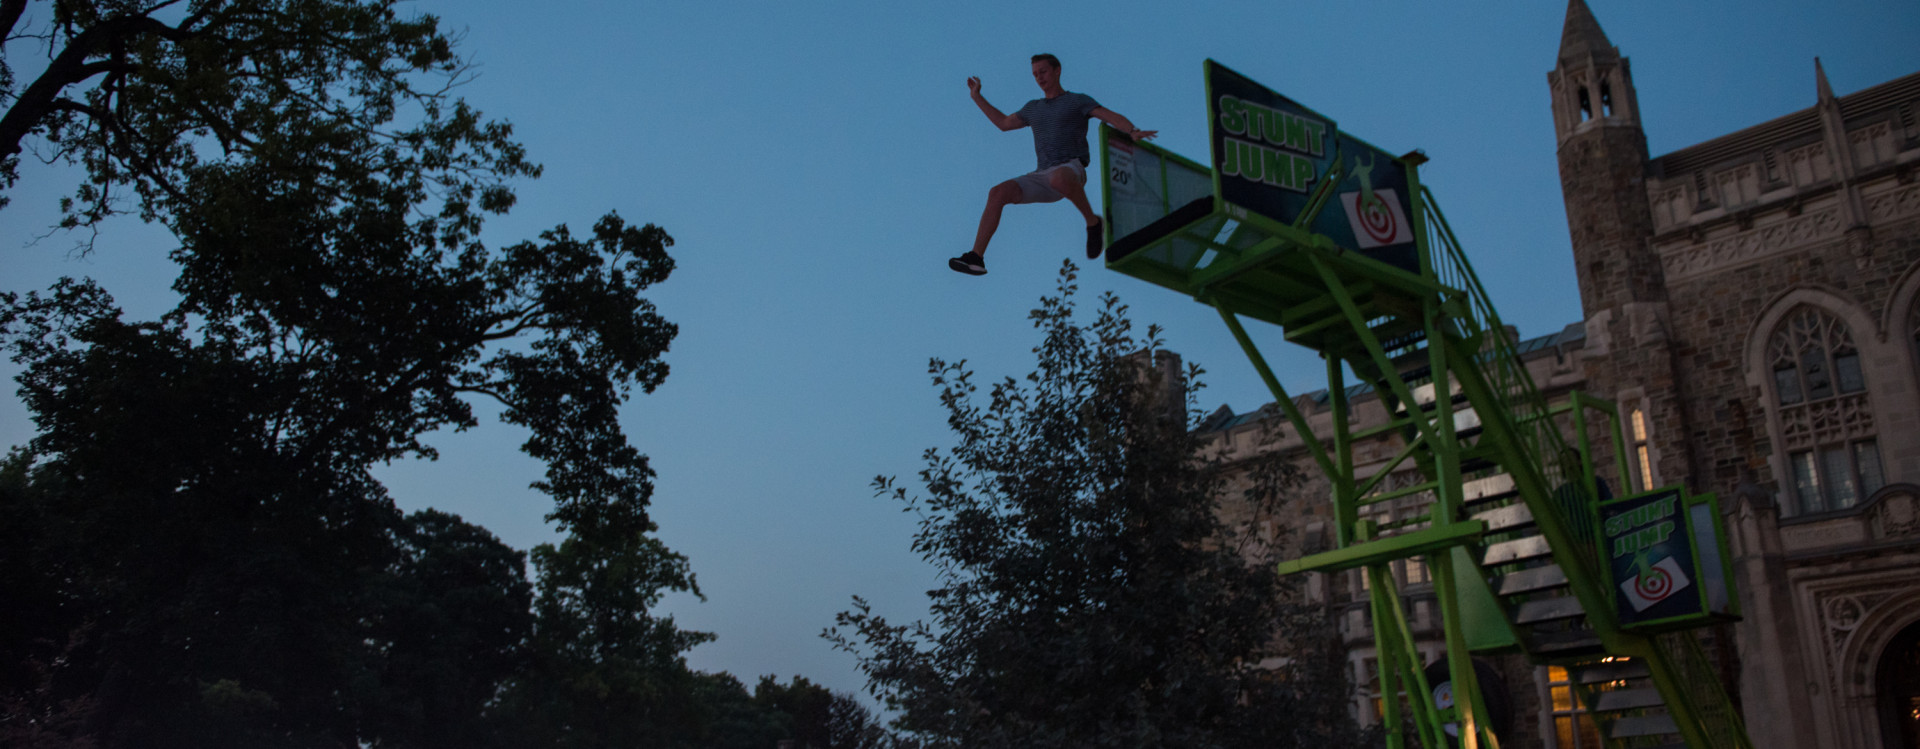 """Student trying out stunt jump at August 2018 """"Nightvision"""" event."""